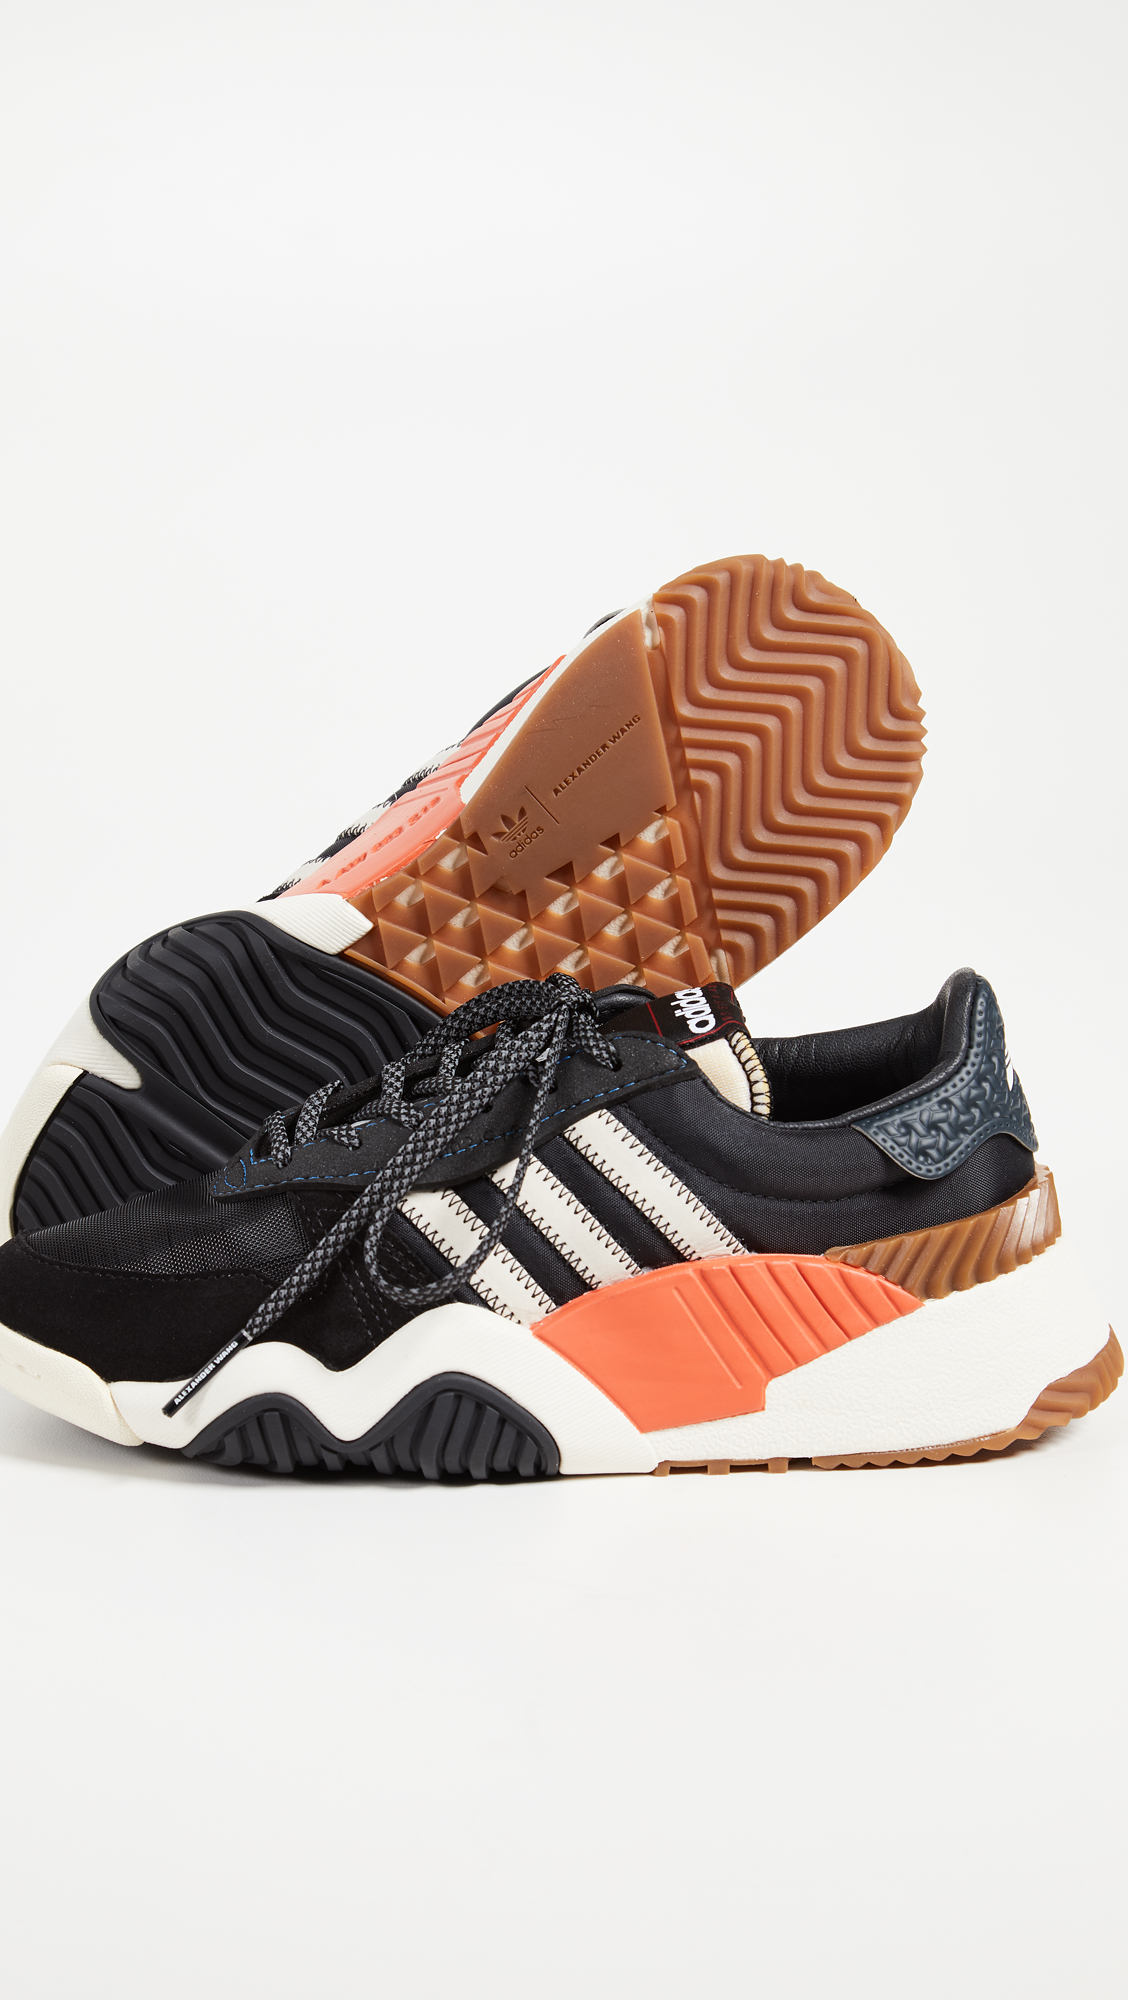 04eb387a280 adidas Originals by Alexander Wang AW Turnout Trainers